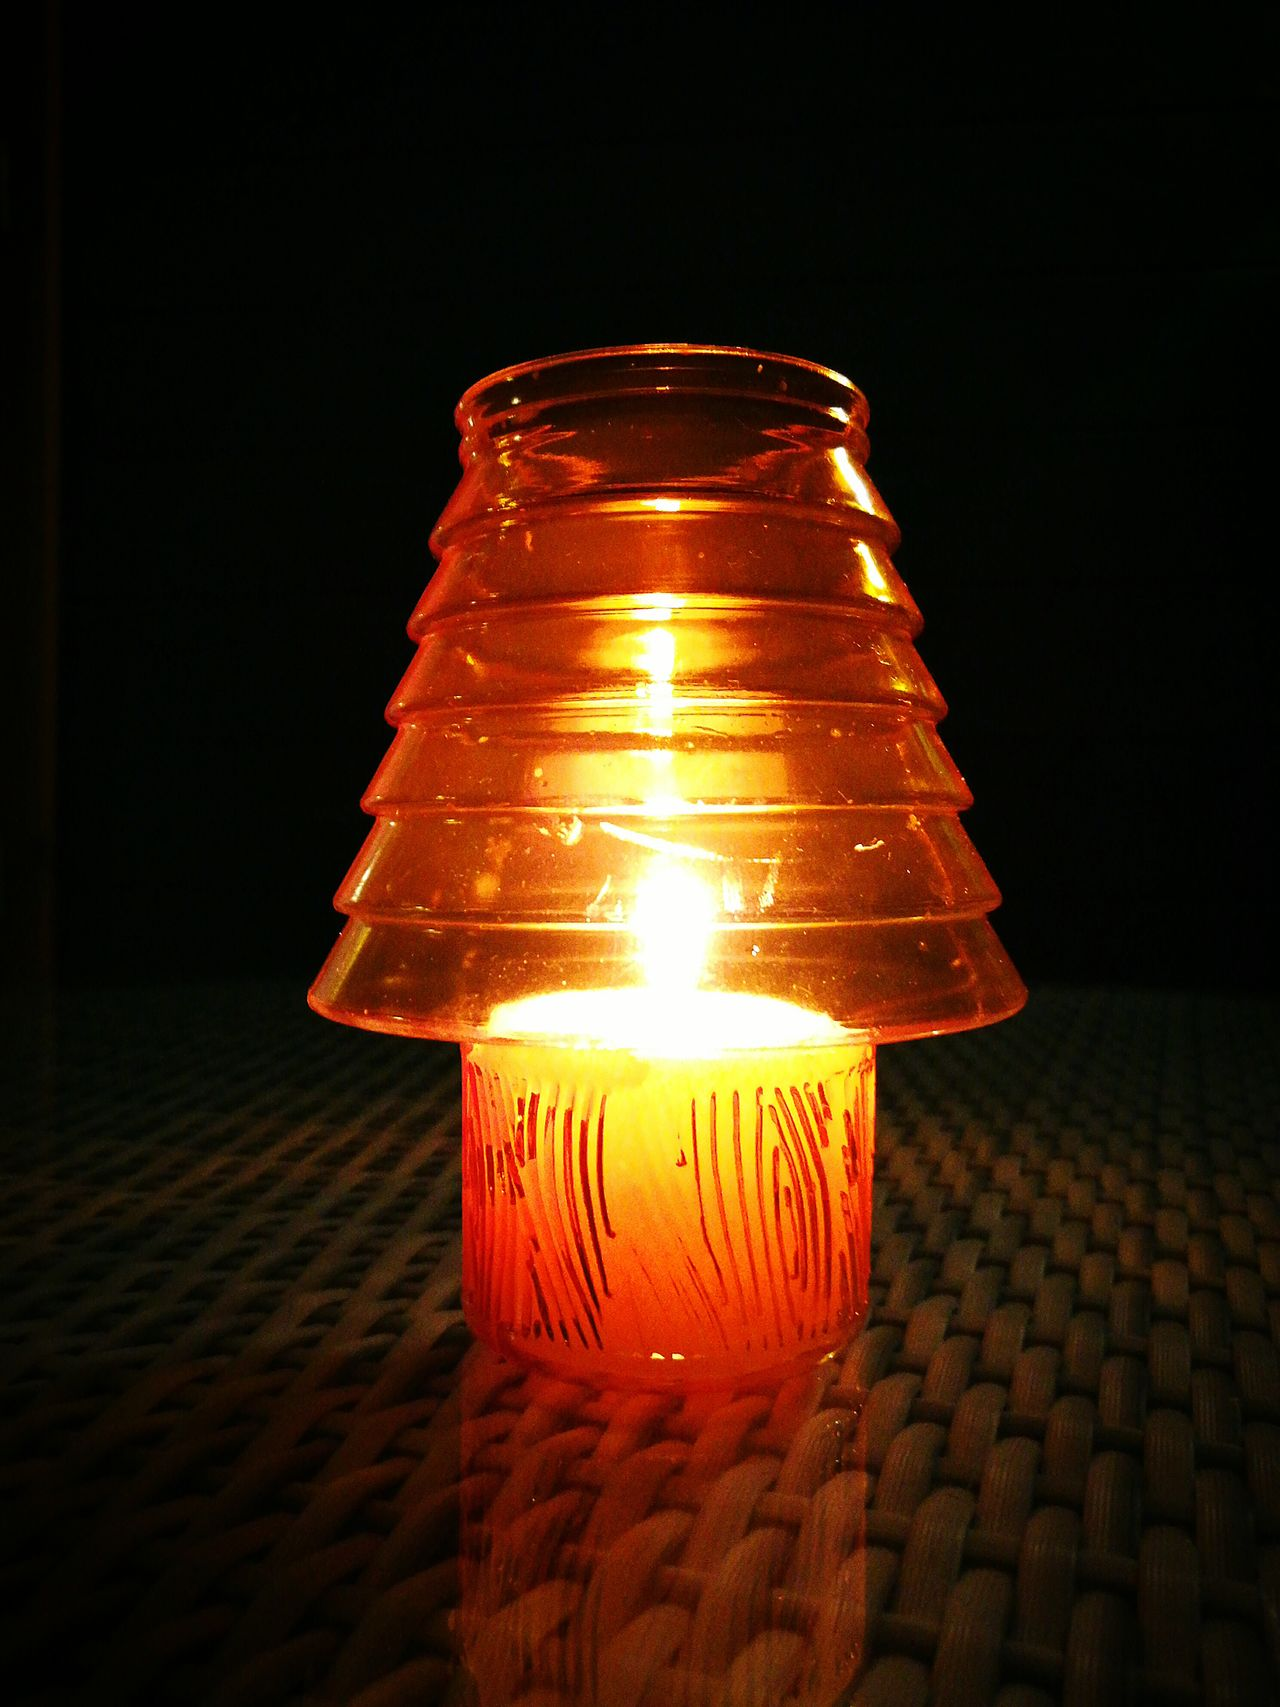 Glowing Illuminated Orange Color Single Object No People Close-up Night Black Background Candlelight Mosquito Repellant